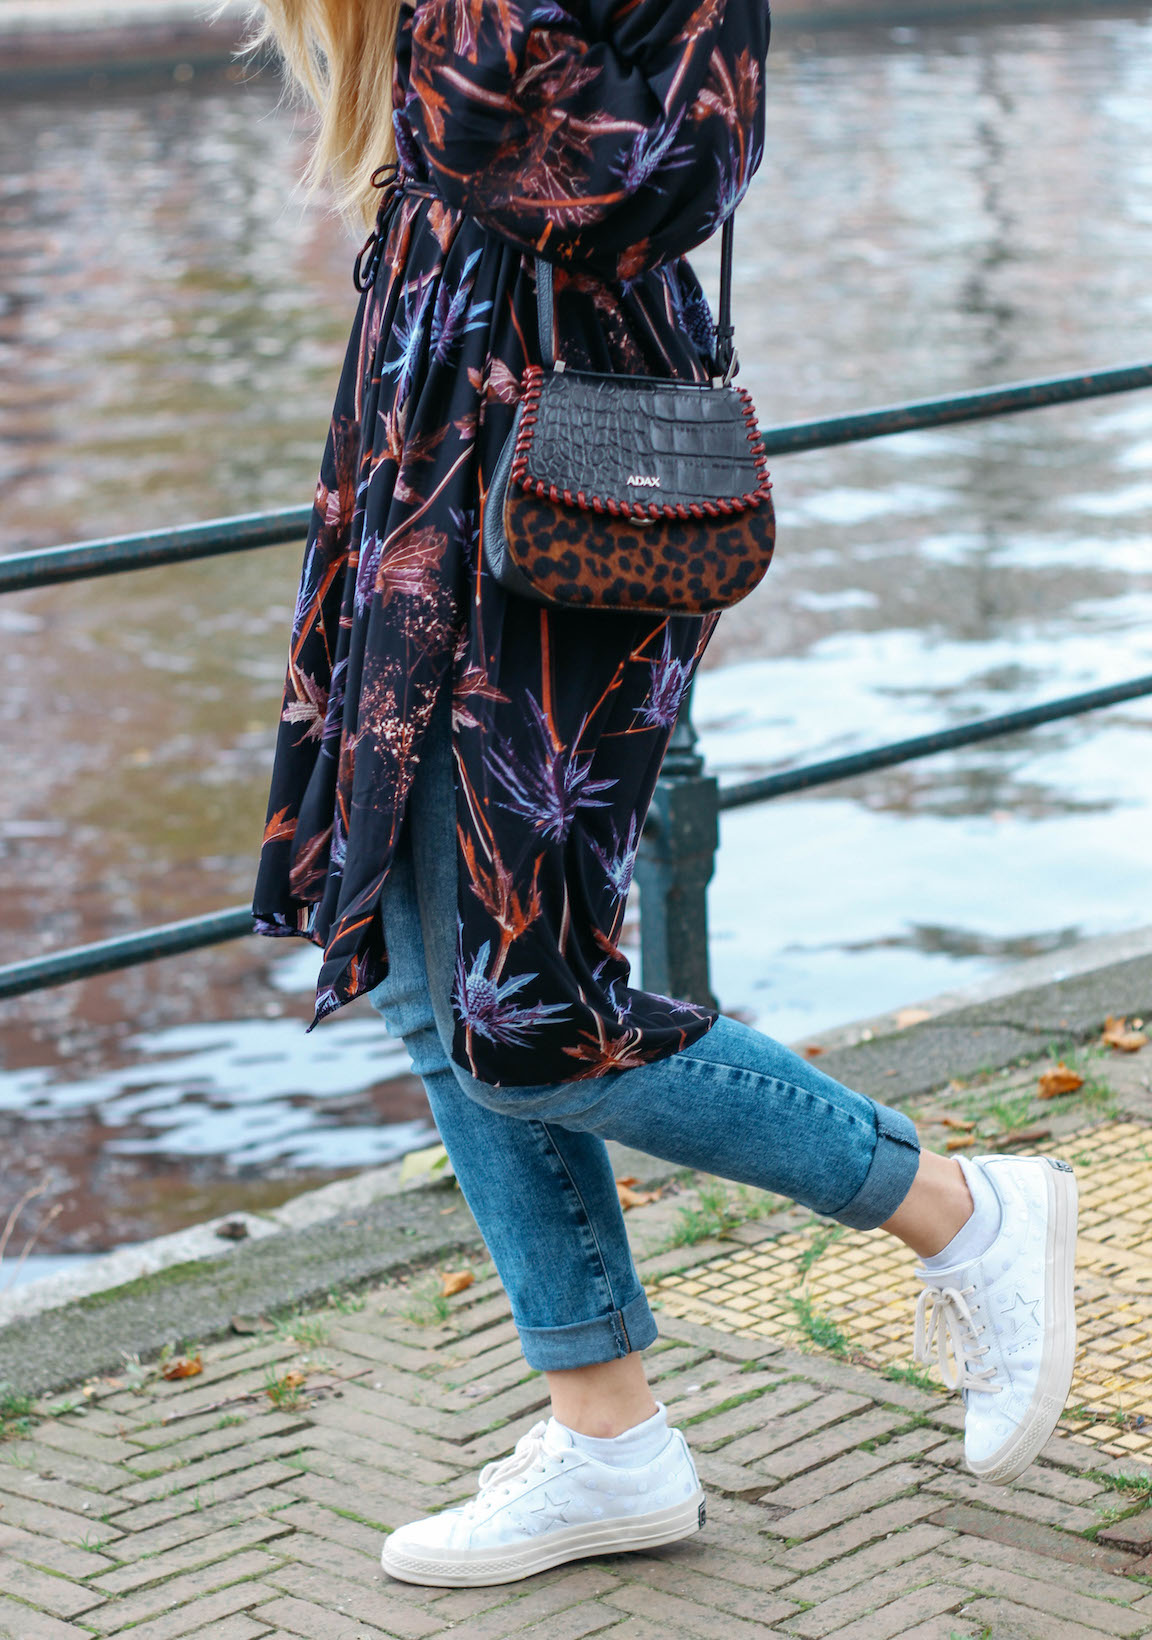 Floortjeloves, one star, all star, converse, weekday, weekday dress, floral, floral dress, adax, adax bag, white sneakers, jeans. wrangler, how to, style tip